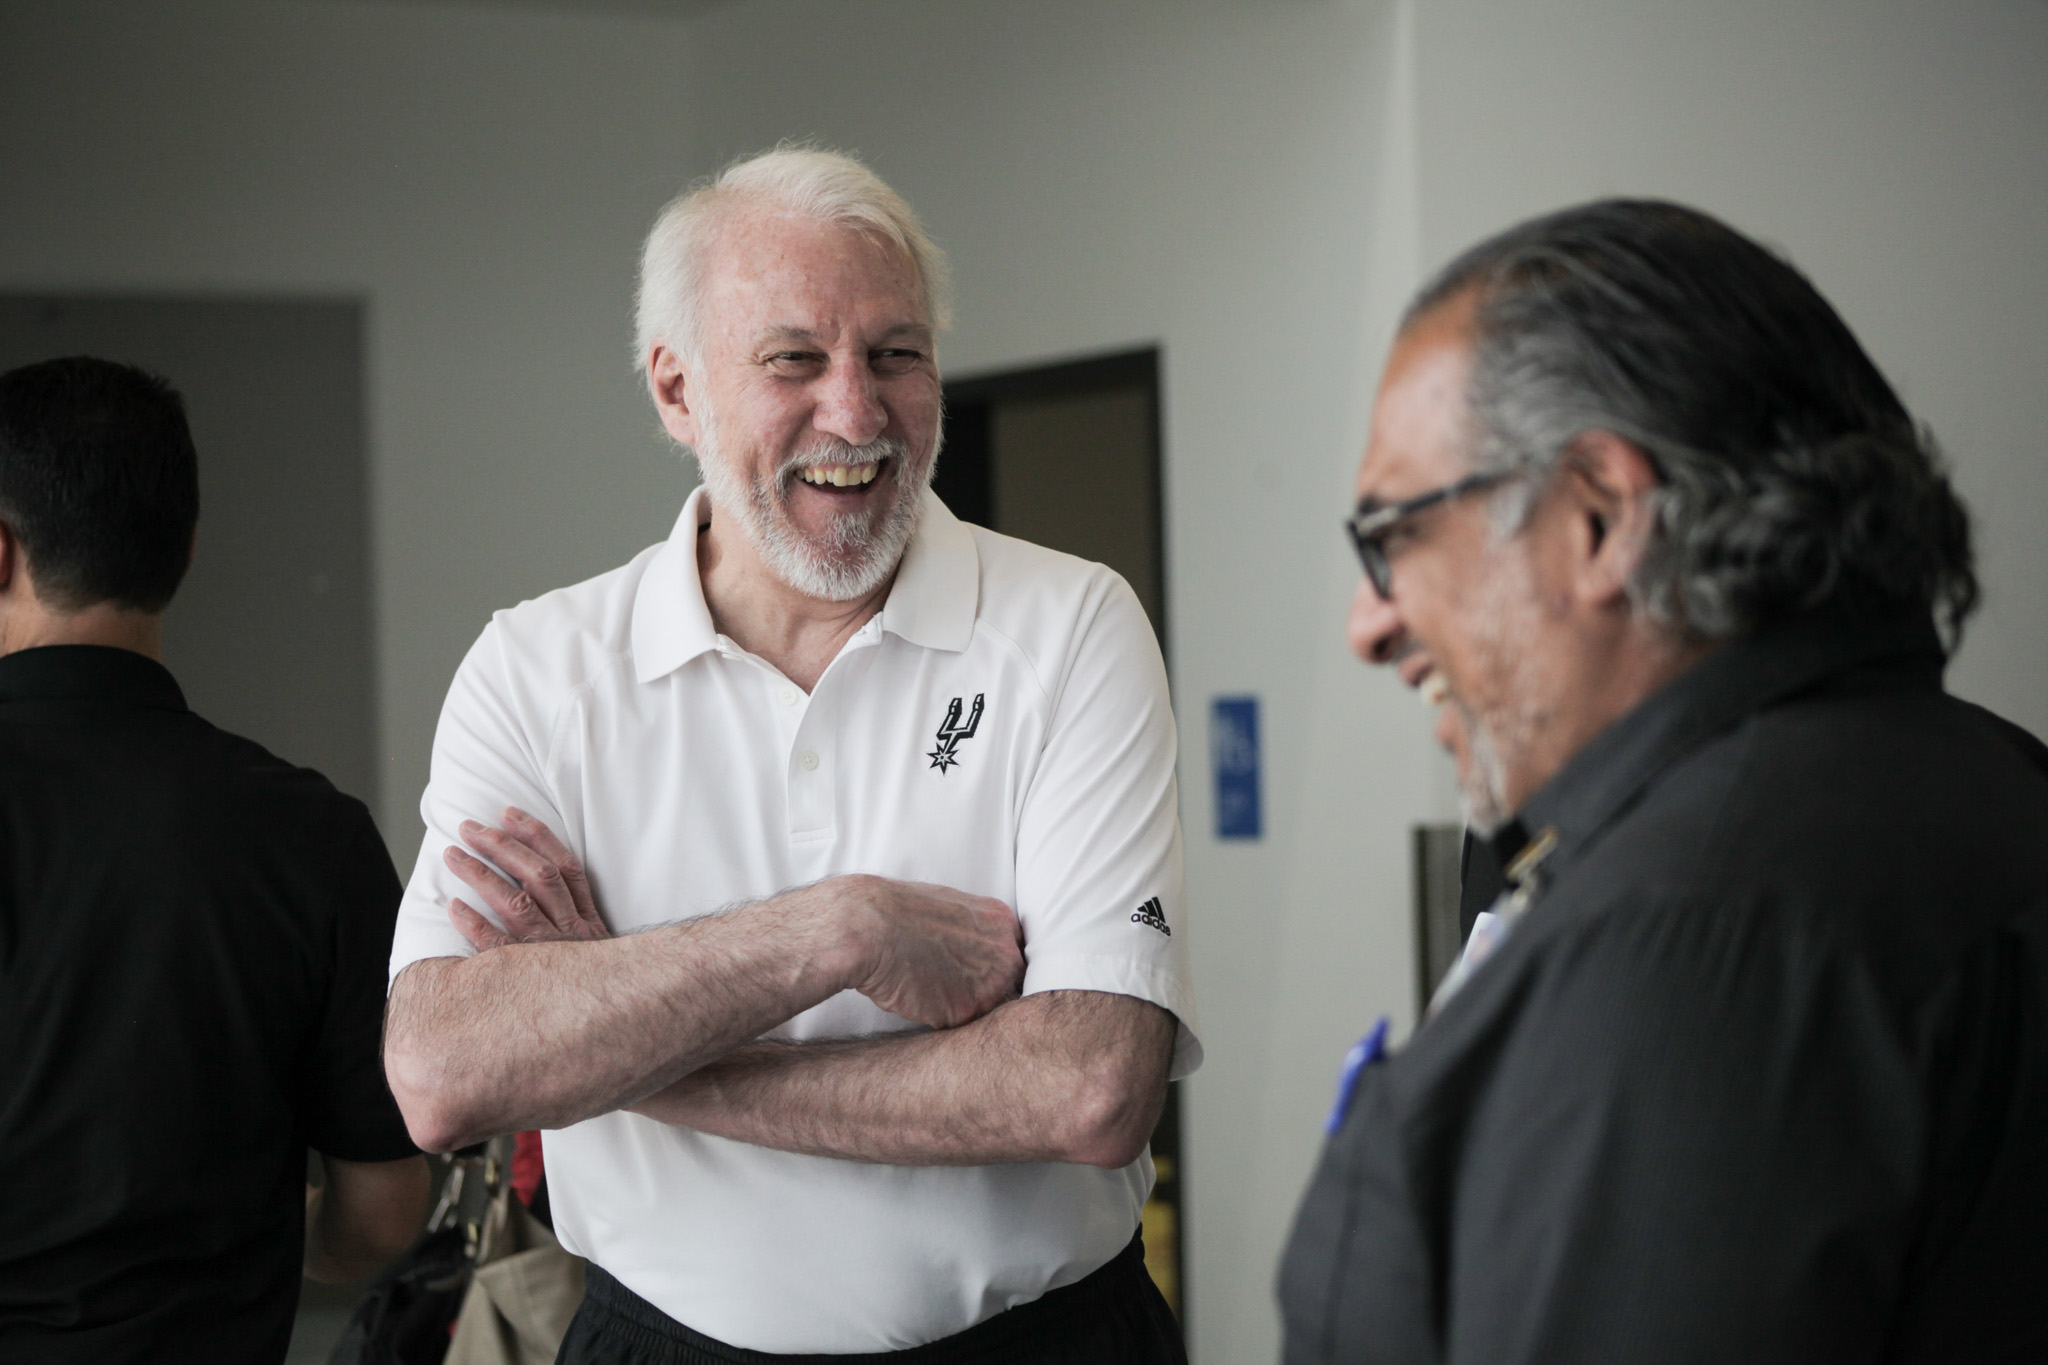 San Antonio Spurs coach Greg Popovich (left) speaks with H-E-B Media Contact Danny Flores (right) at KIPP Academy before the public discussion on the urgent need for donations to the Food Bank.